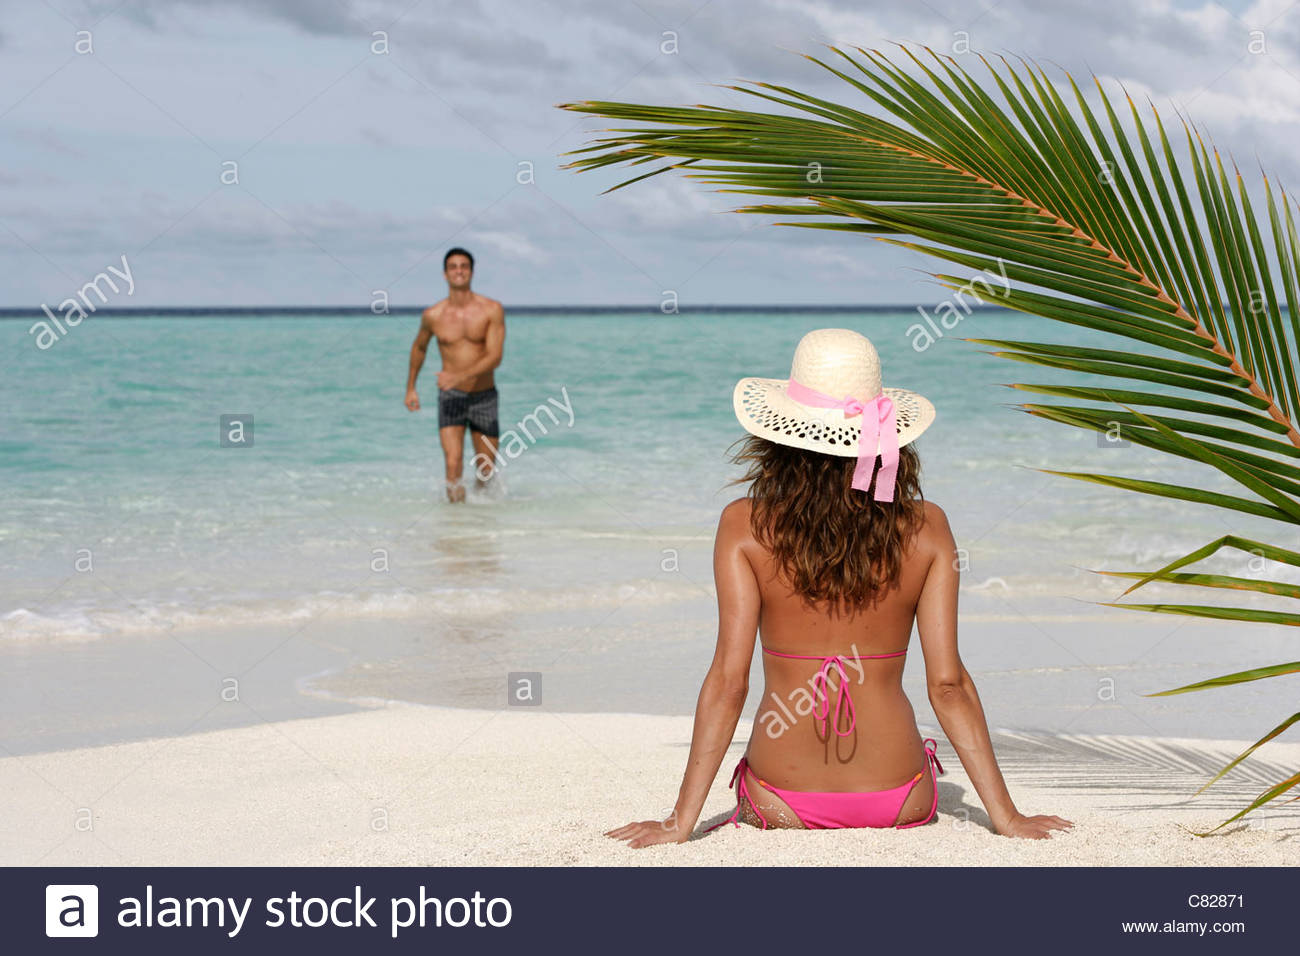 Woman sitting on the beach and man coming out of the water - Stock Image